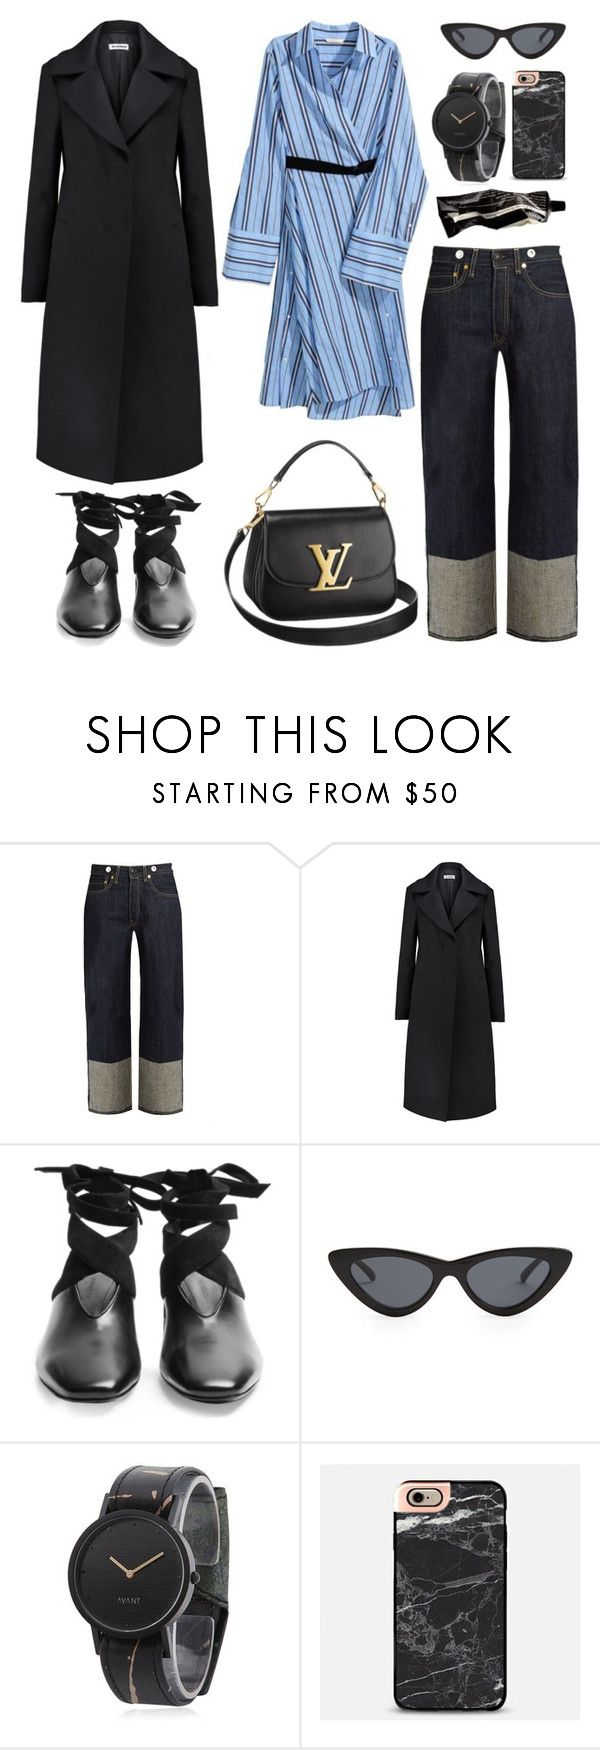 """""""Unbenannt #878"""" by fashionlandscape ❤ liked on Polyvore featuring rag & bone, Jil Sander, J.W. Anderson, Louis Vuitton, Le Specs, South Lane, Casetify and Aesop"""